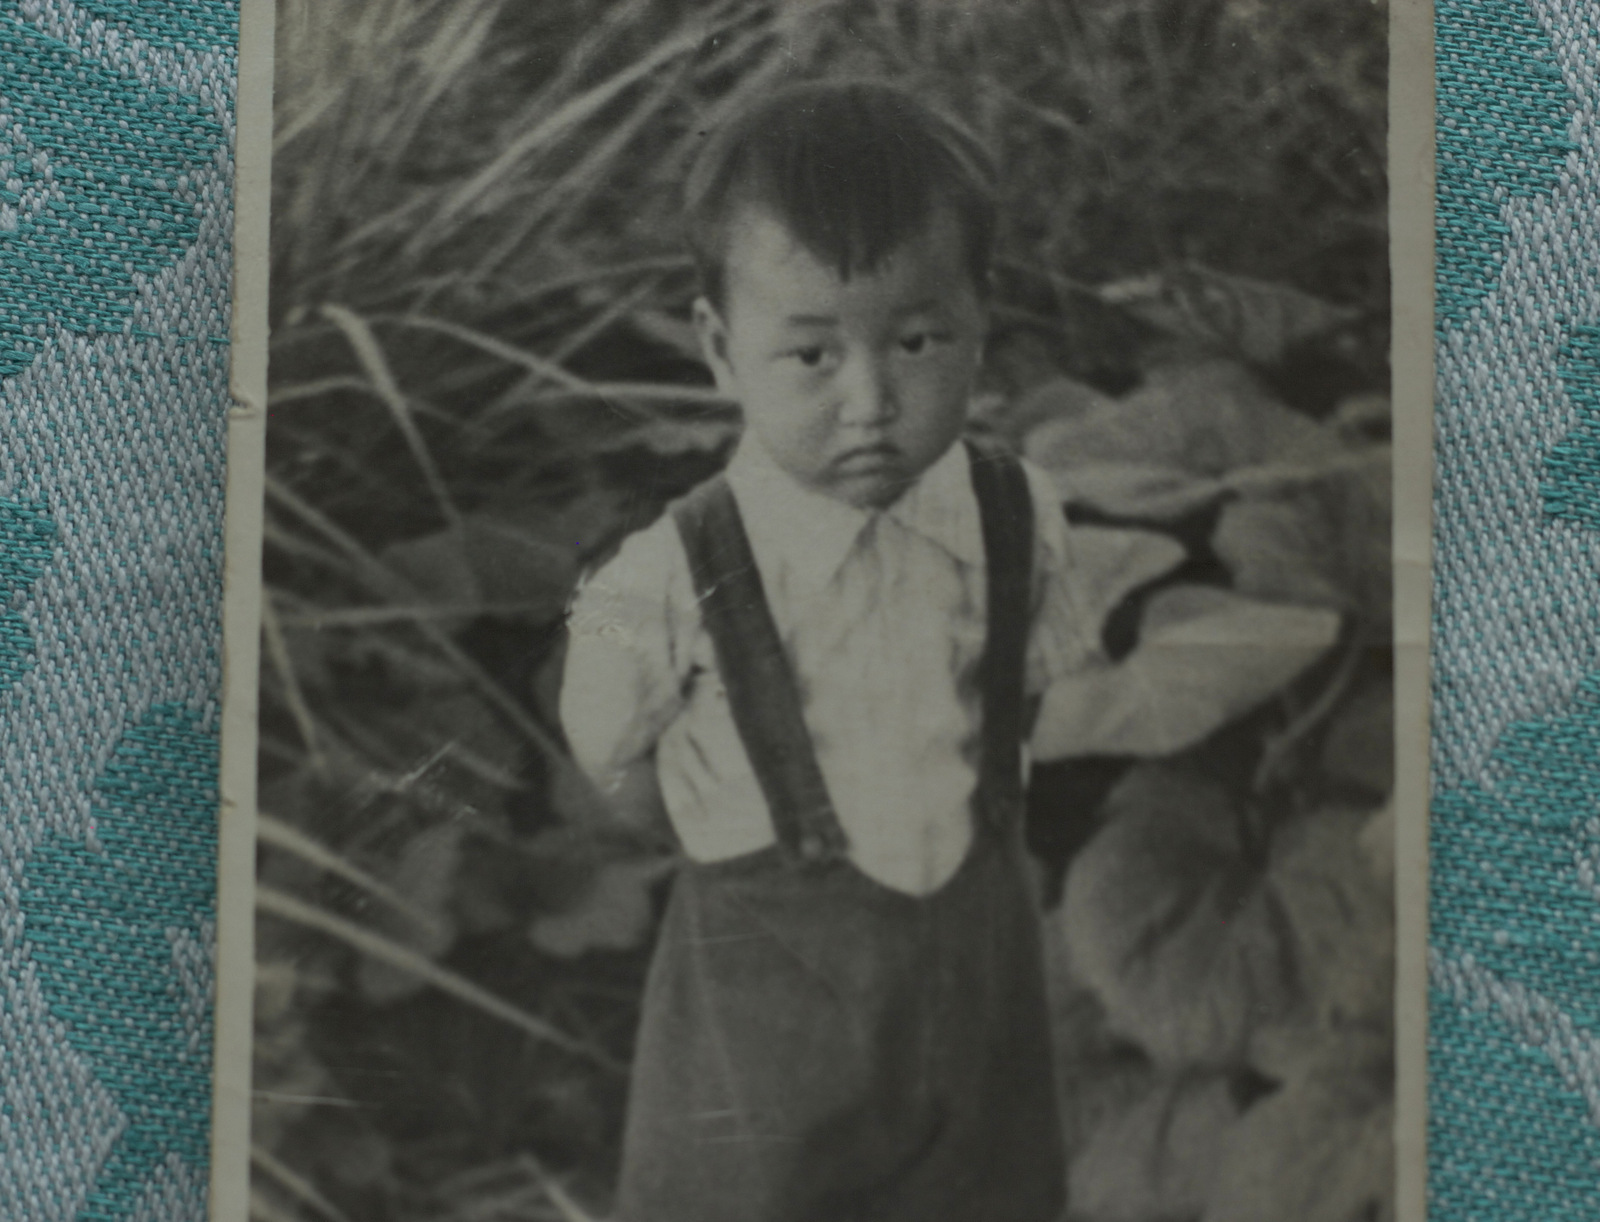 Alexey's first son Leonid - the only photographic memory left of Alexey Ten.